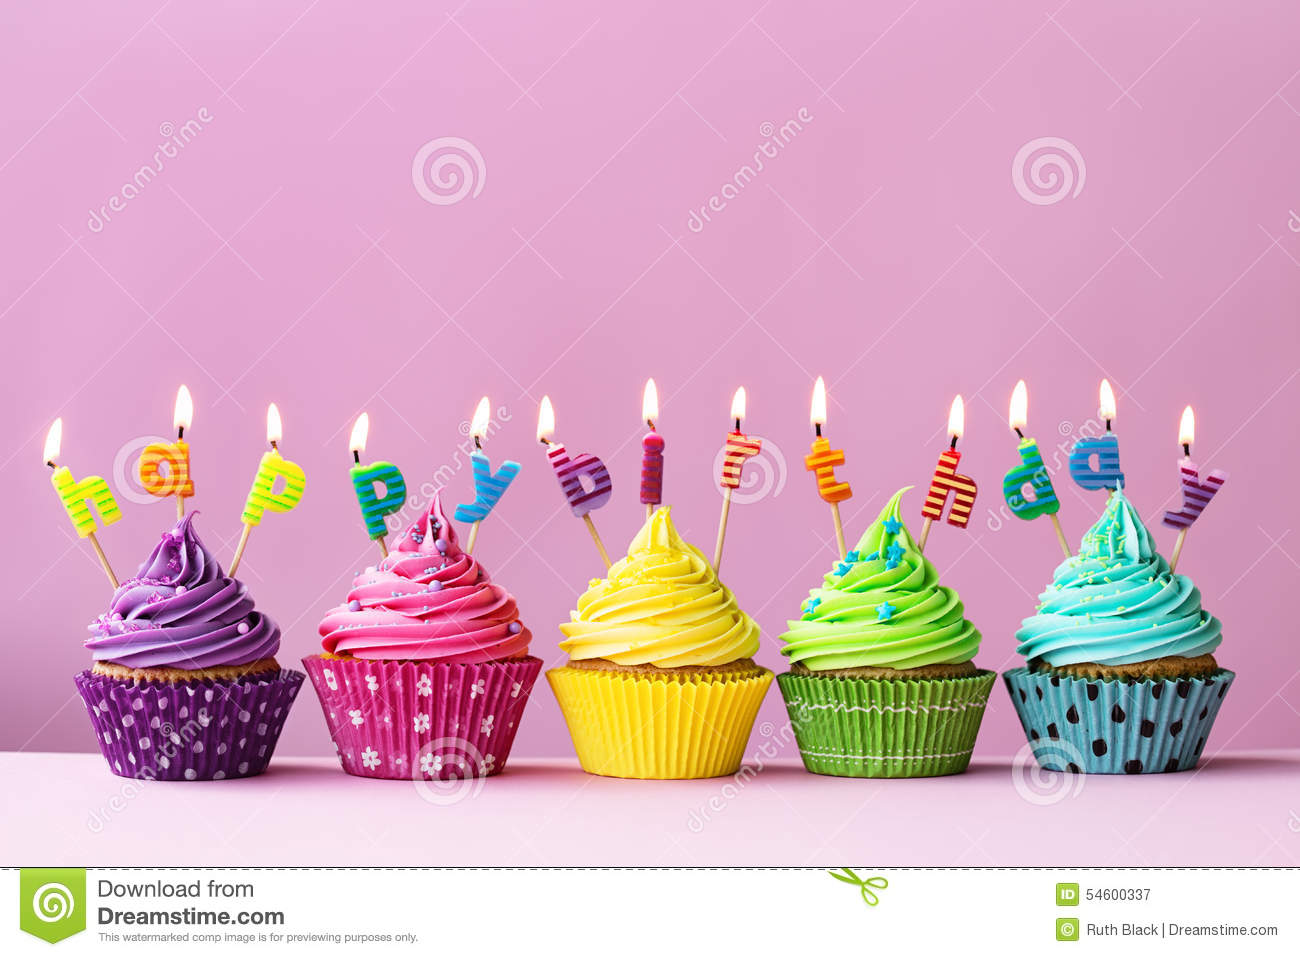 happy birthday cupcake images ; happy-birthday-cupcakes-candles-spelling-words-54600337